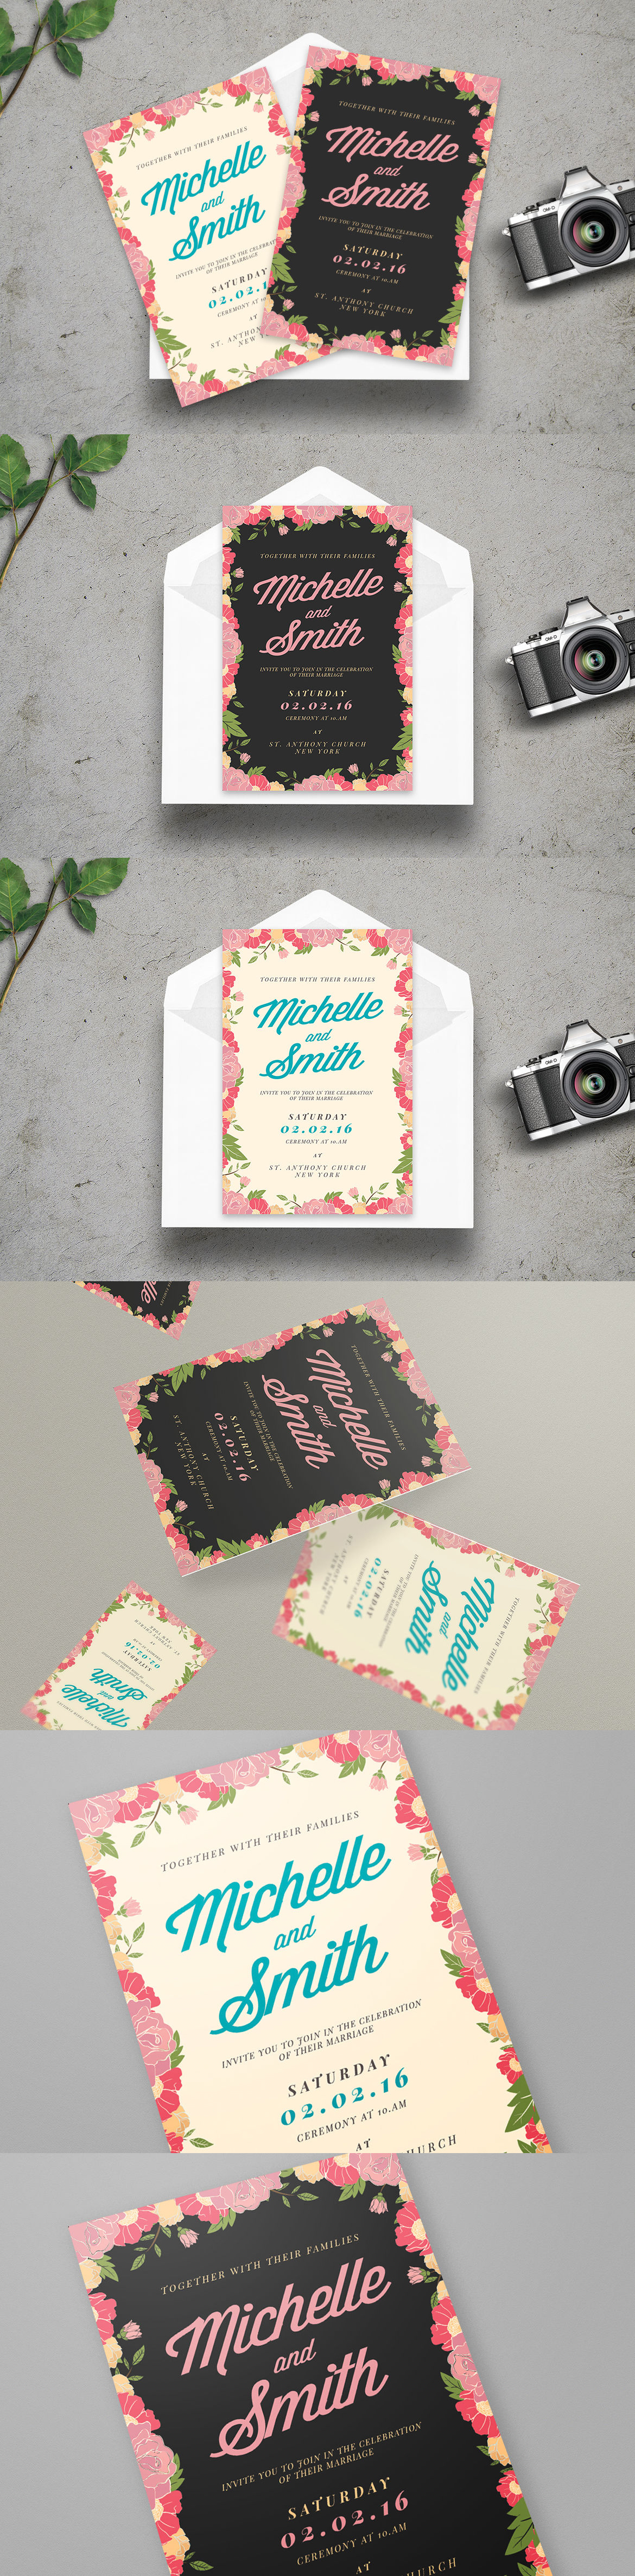 Floral Wedding Invitation Card Template PSD